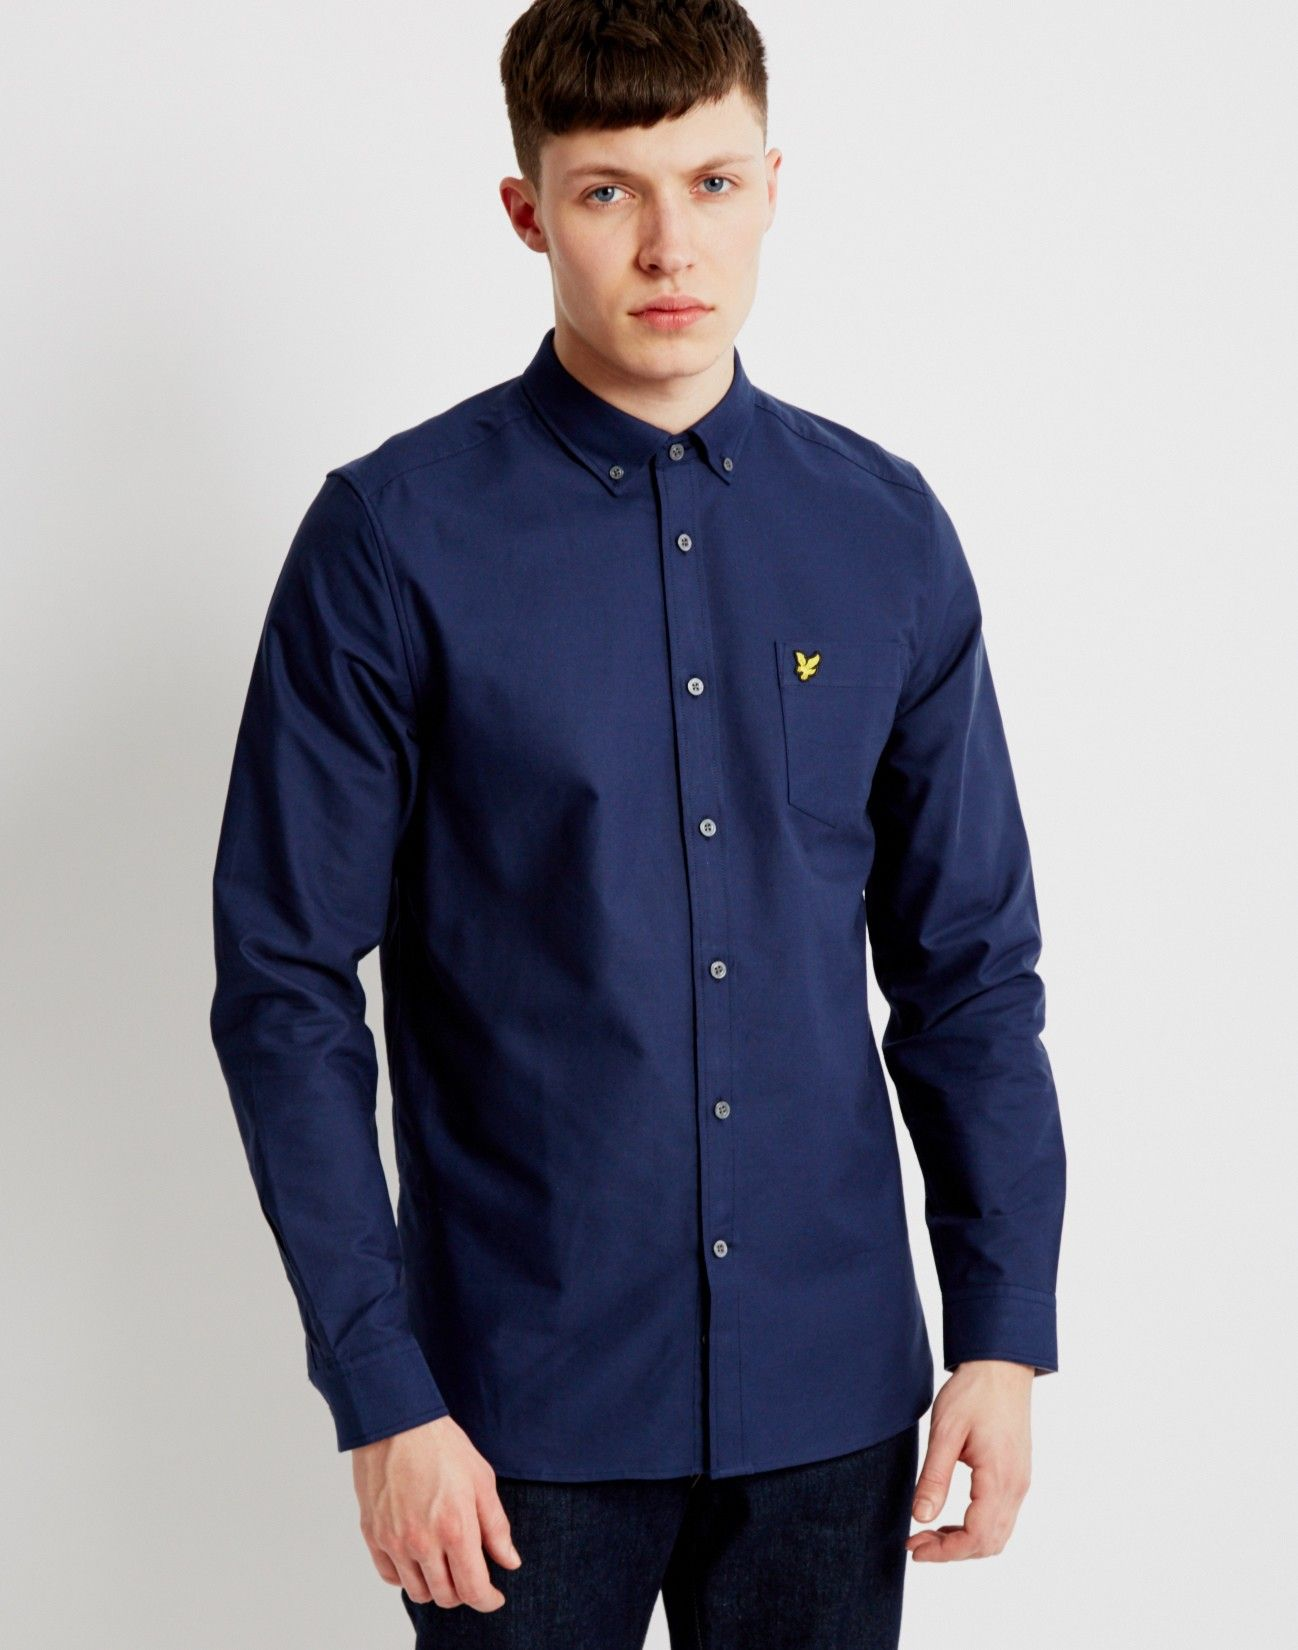 Lyle & Scott Long Sleeve Oxford Shirt Navy | Shop men's clothing and  menswear at The